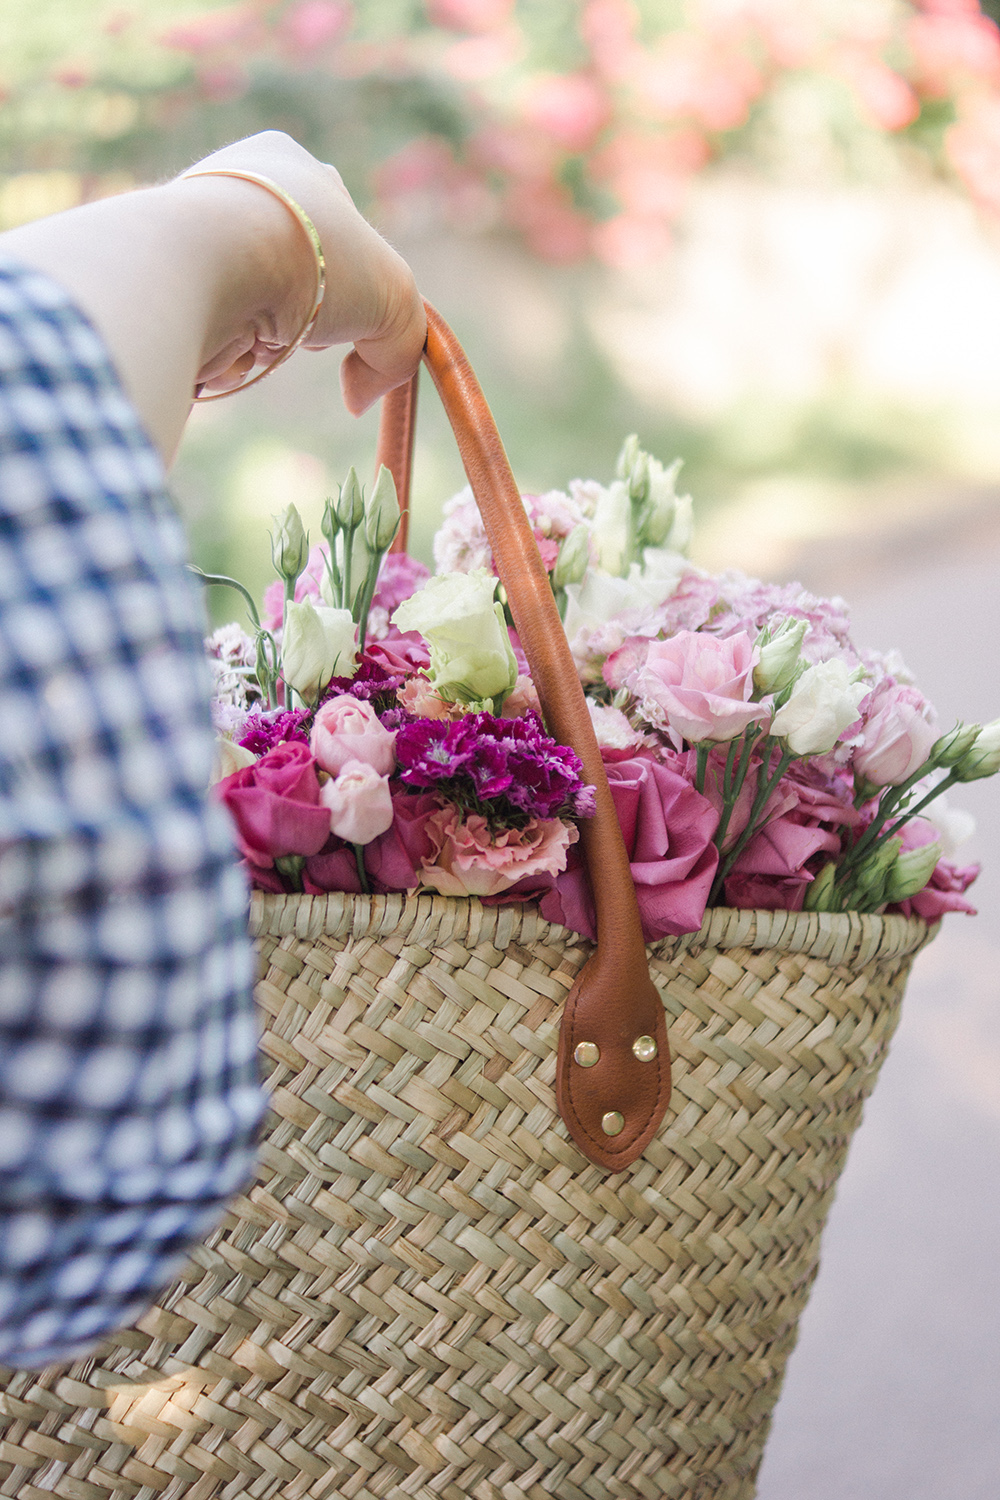 straw-bag-flowers-summer